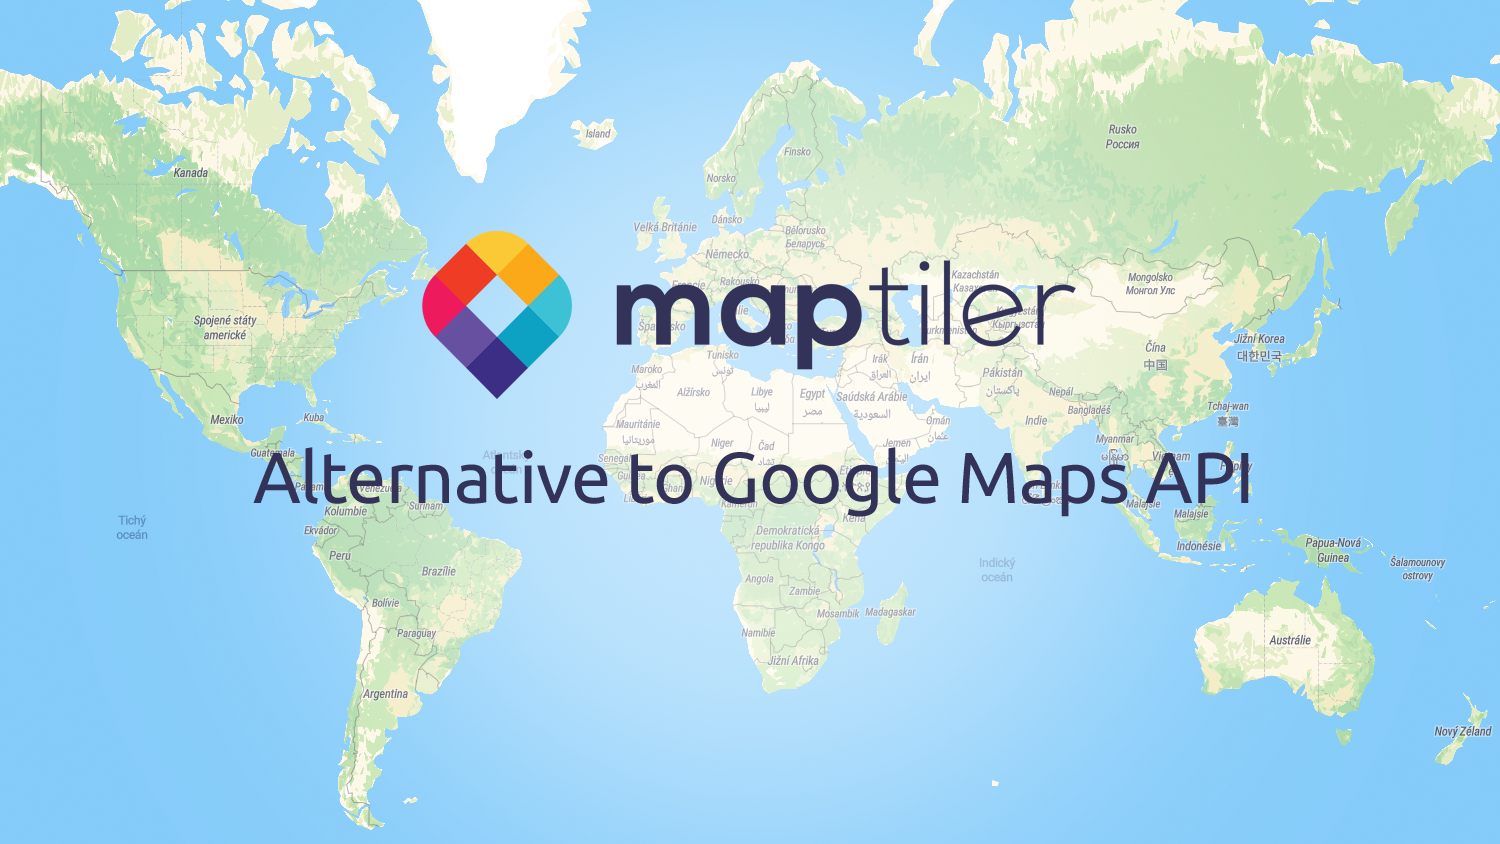 Google Maps API alternative – MapTiler News on msn maps, google map maker, google voice, gppgle maps, aeronautical maps, google sky, goolge maps, search maps, googie maps, google search, ipad maps, microsoft maps, stanford university maps, satellite map images with missing or unclear data, googlr maps, web mapping, google mars, google docs, google translate, google moon, iphone maps, waze maps, android maps, aerial maps, yahoo! maps, amazon fire phone maps, google chrome, online maps, gogole maps, bing maps, road map usa states maps, topographic maps, route planning software, google goggles,